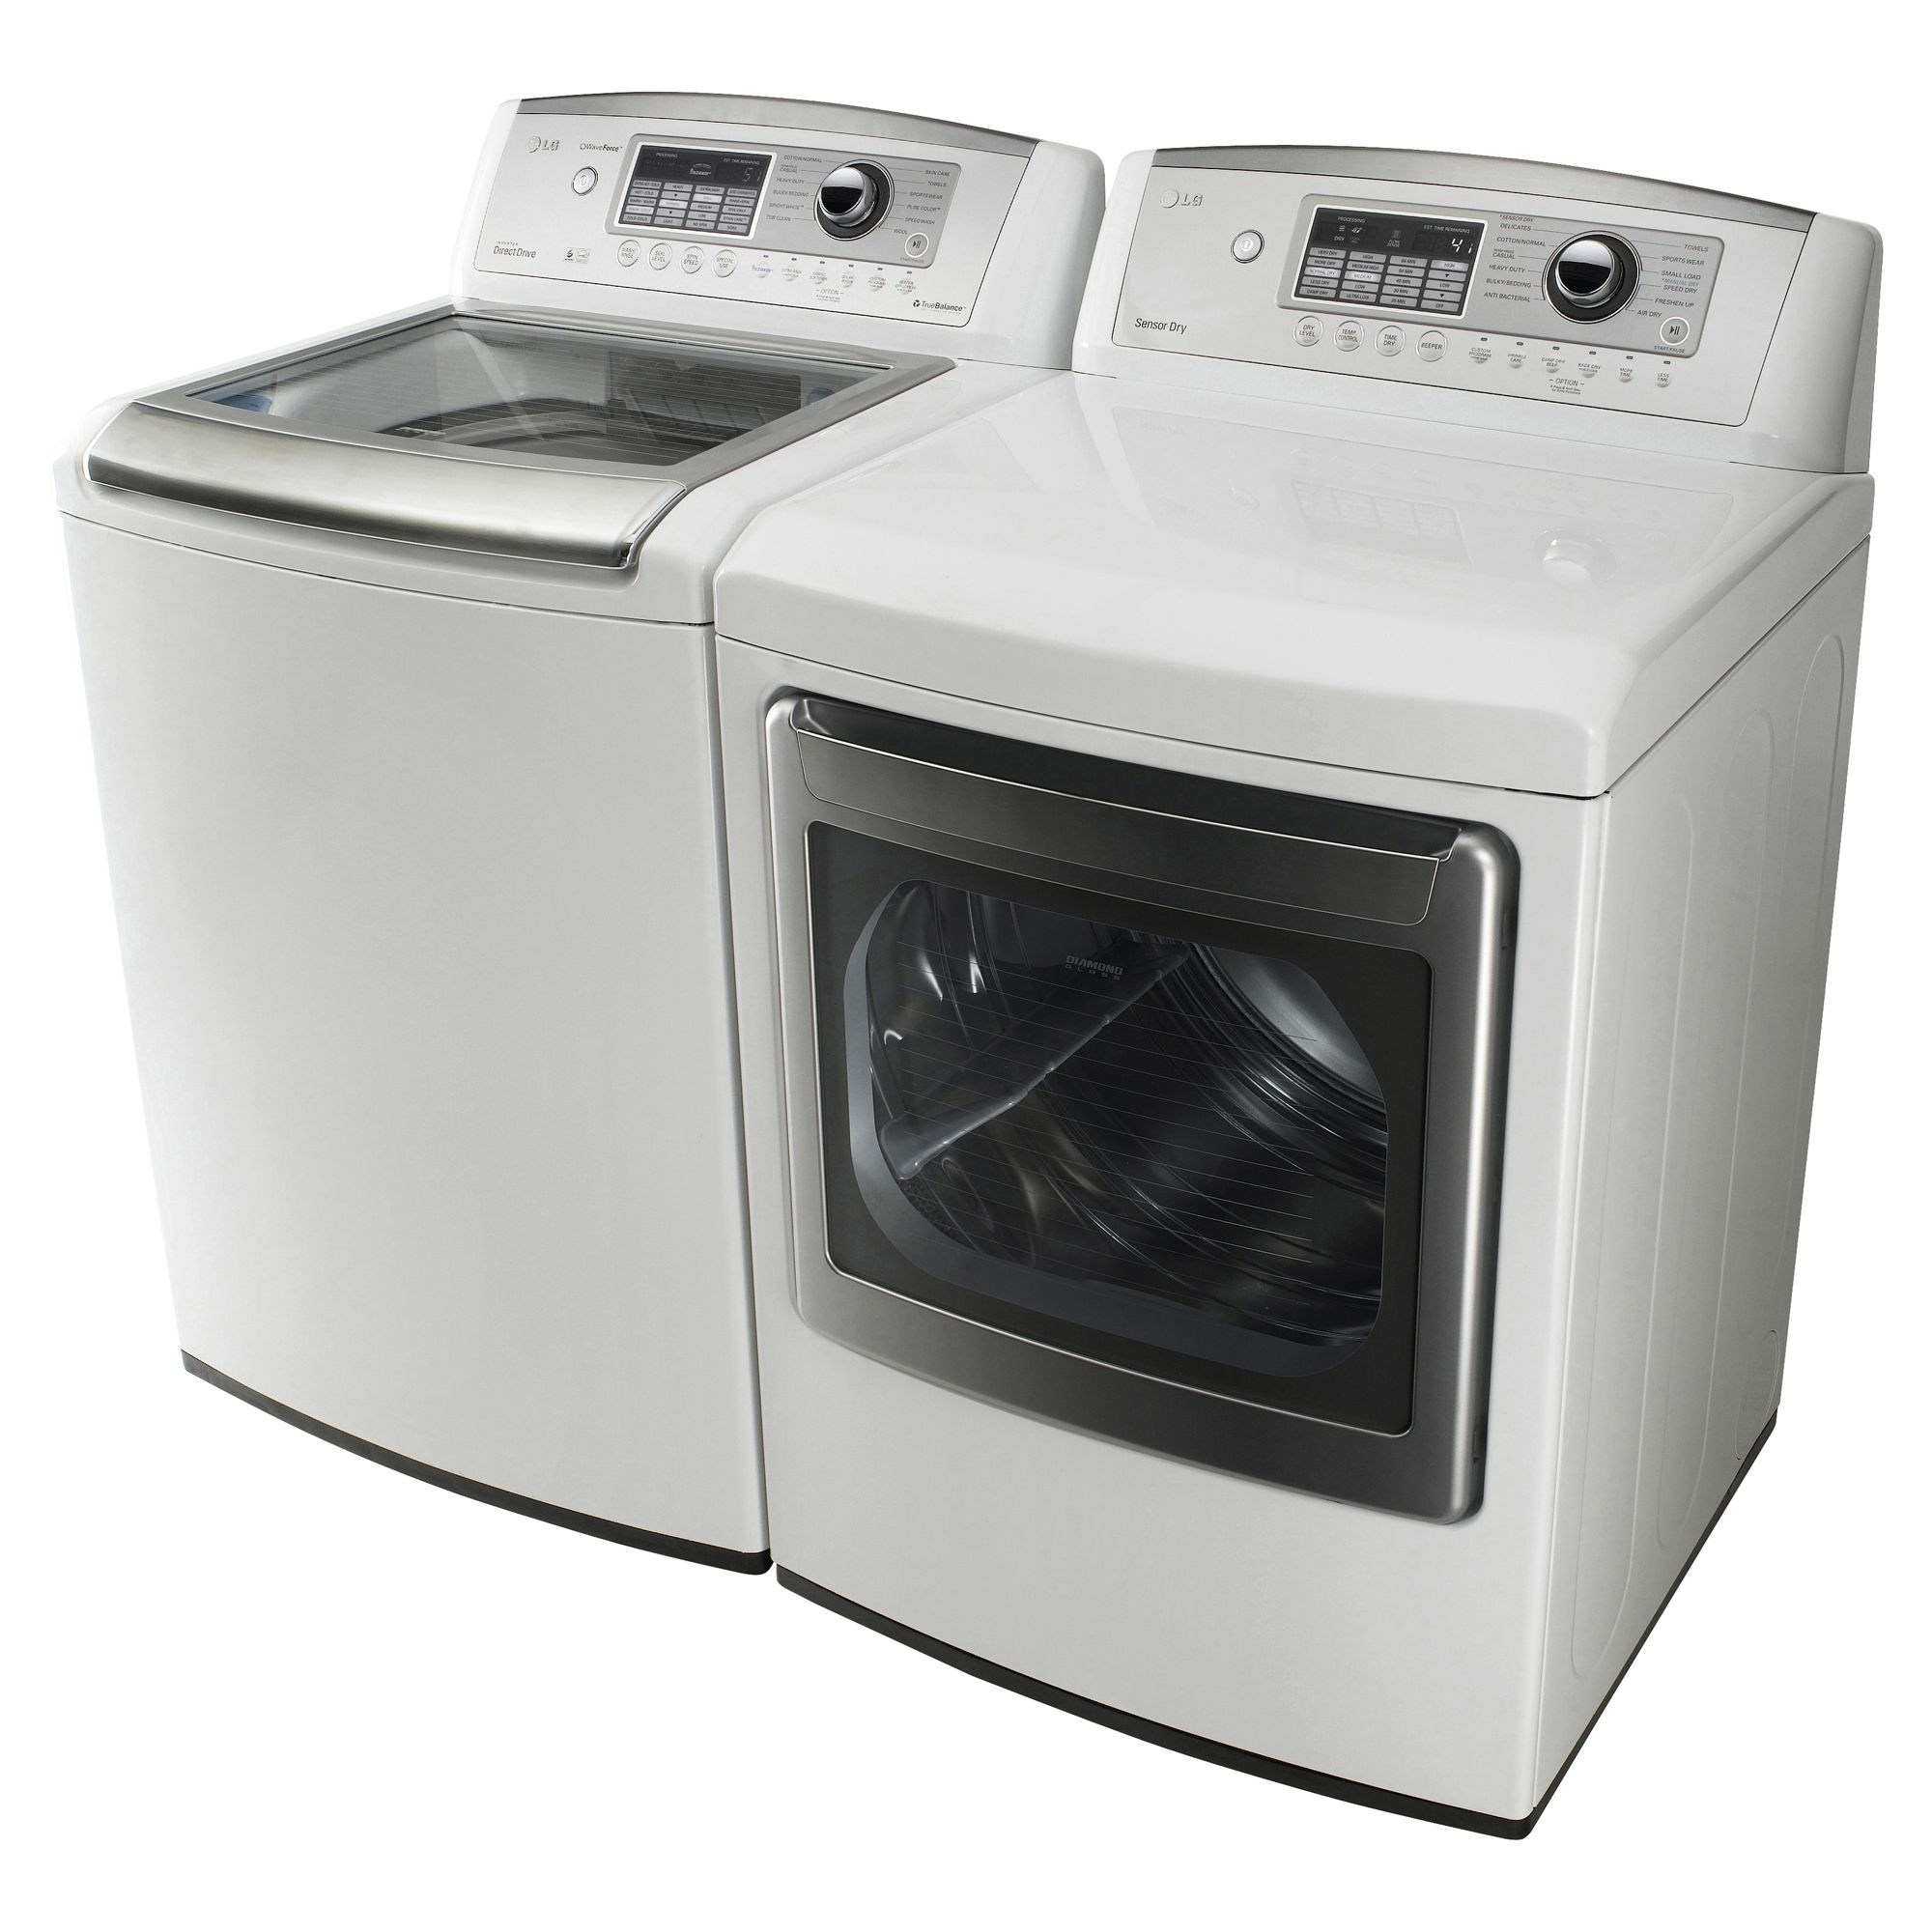 LG 7.3 cu. ft. Electric Dryer, White